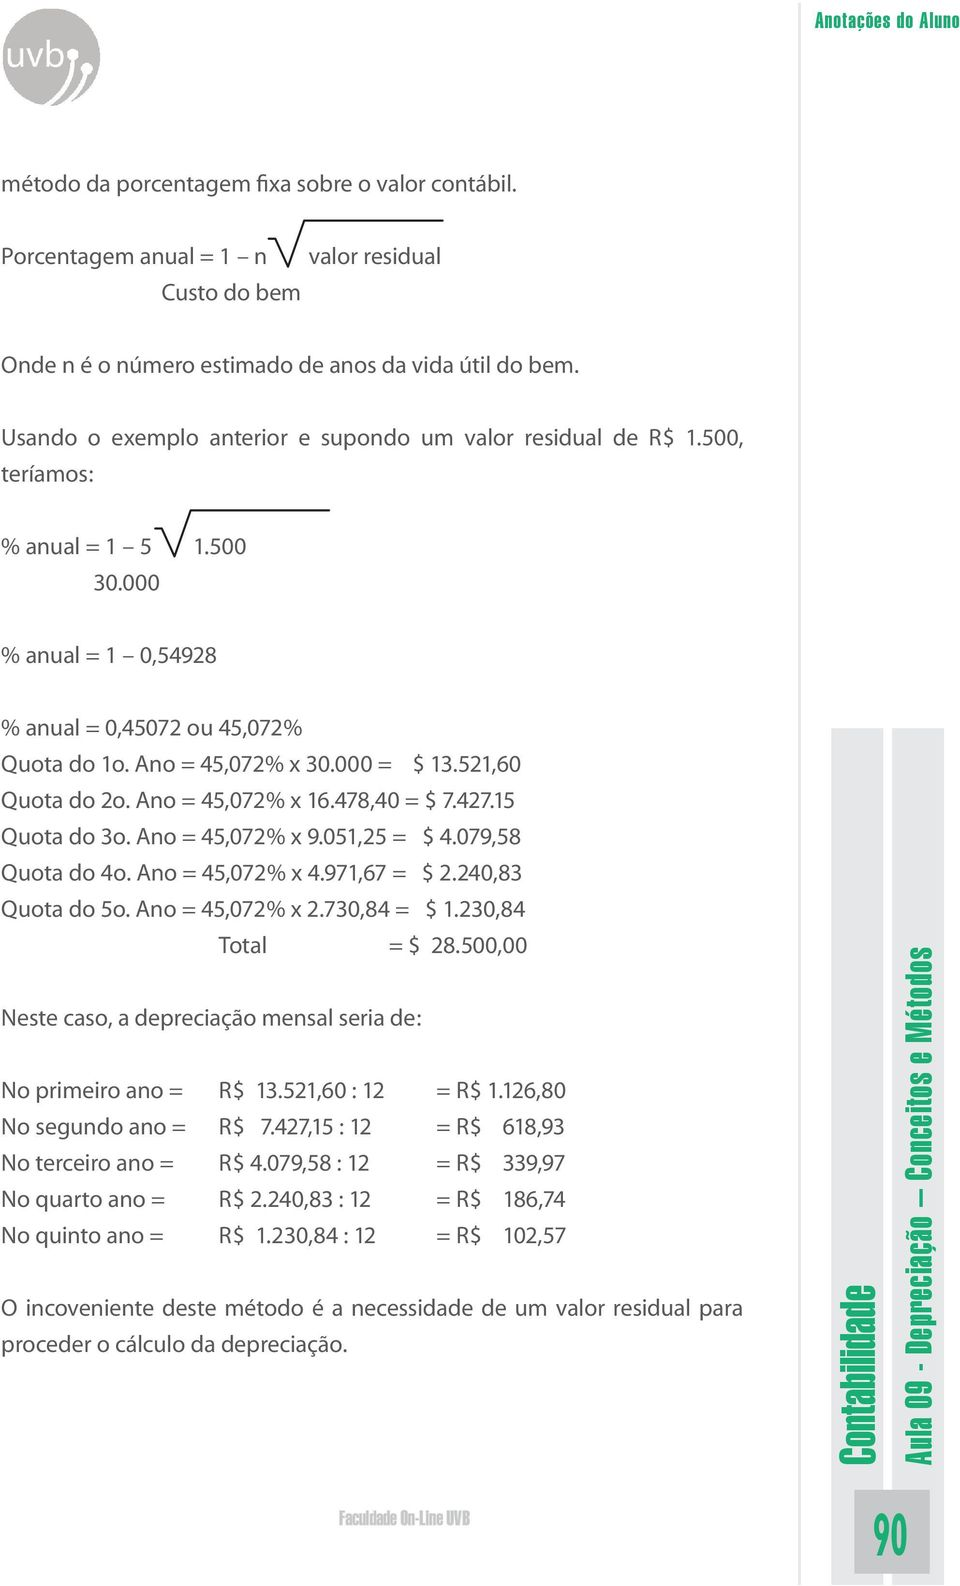 521,60 Quota do 2o. Ano = 45,072% x 16.478,40 = $ 7.427.15 Quota do 3o. Ano = 45,072% x 9.051,25 = $ 4.079,58 Quota do 4o. Ano = 45,072% x 4.971,67 = $ 2.240,83 Quota do 5o. Ano = 45,072% x 2.